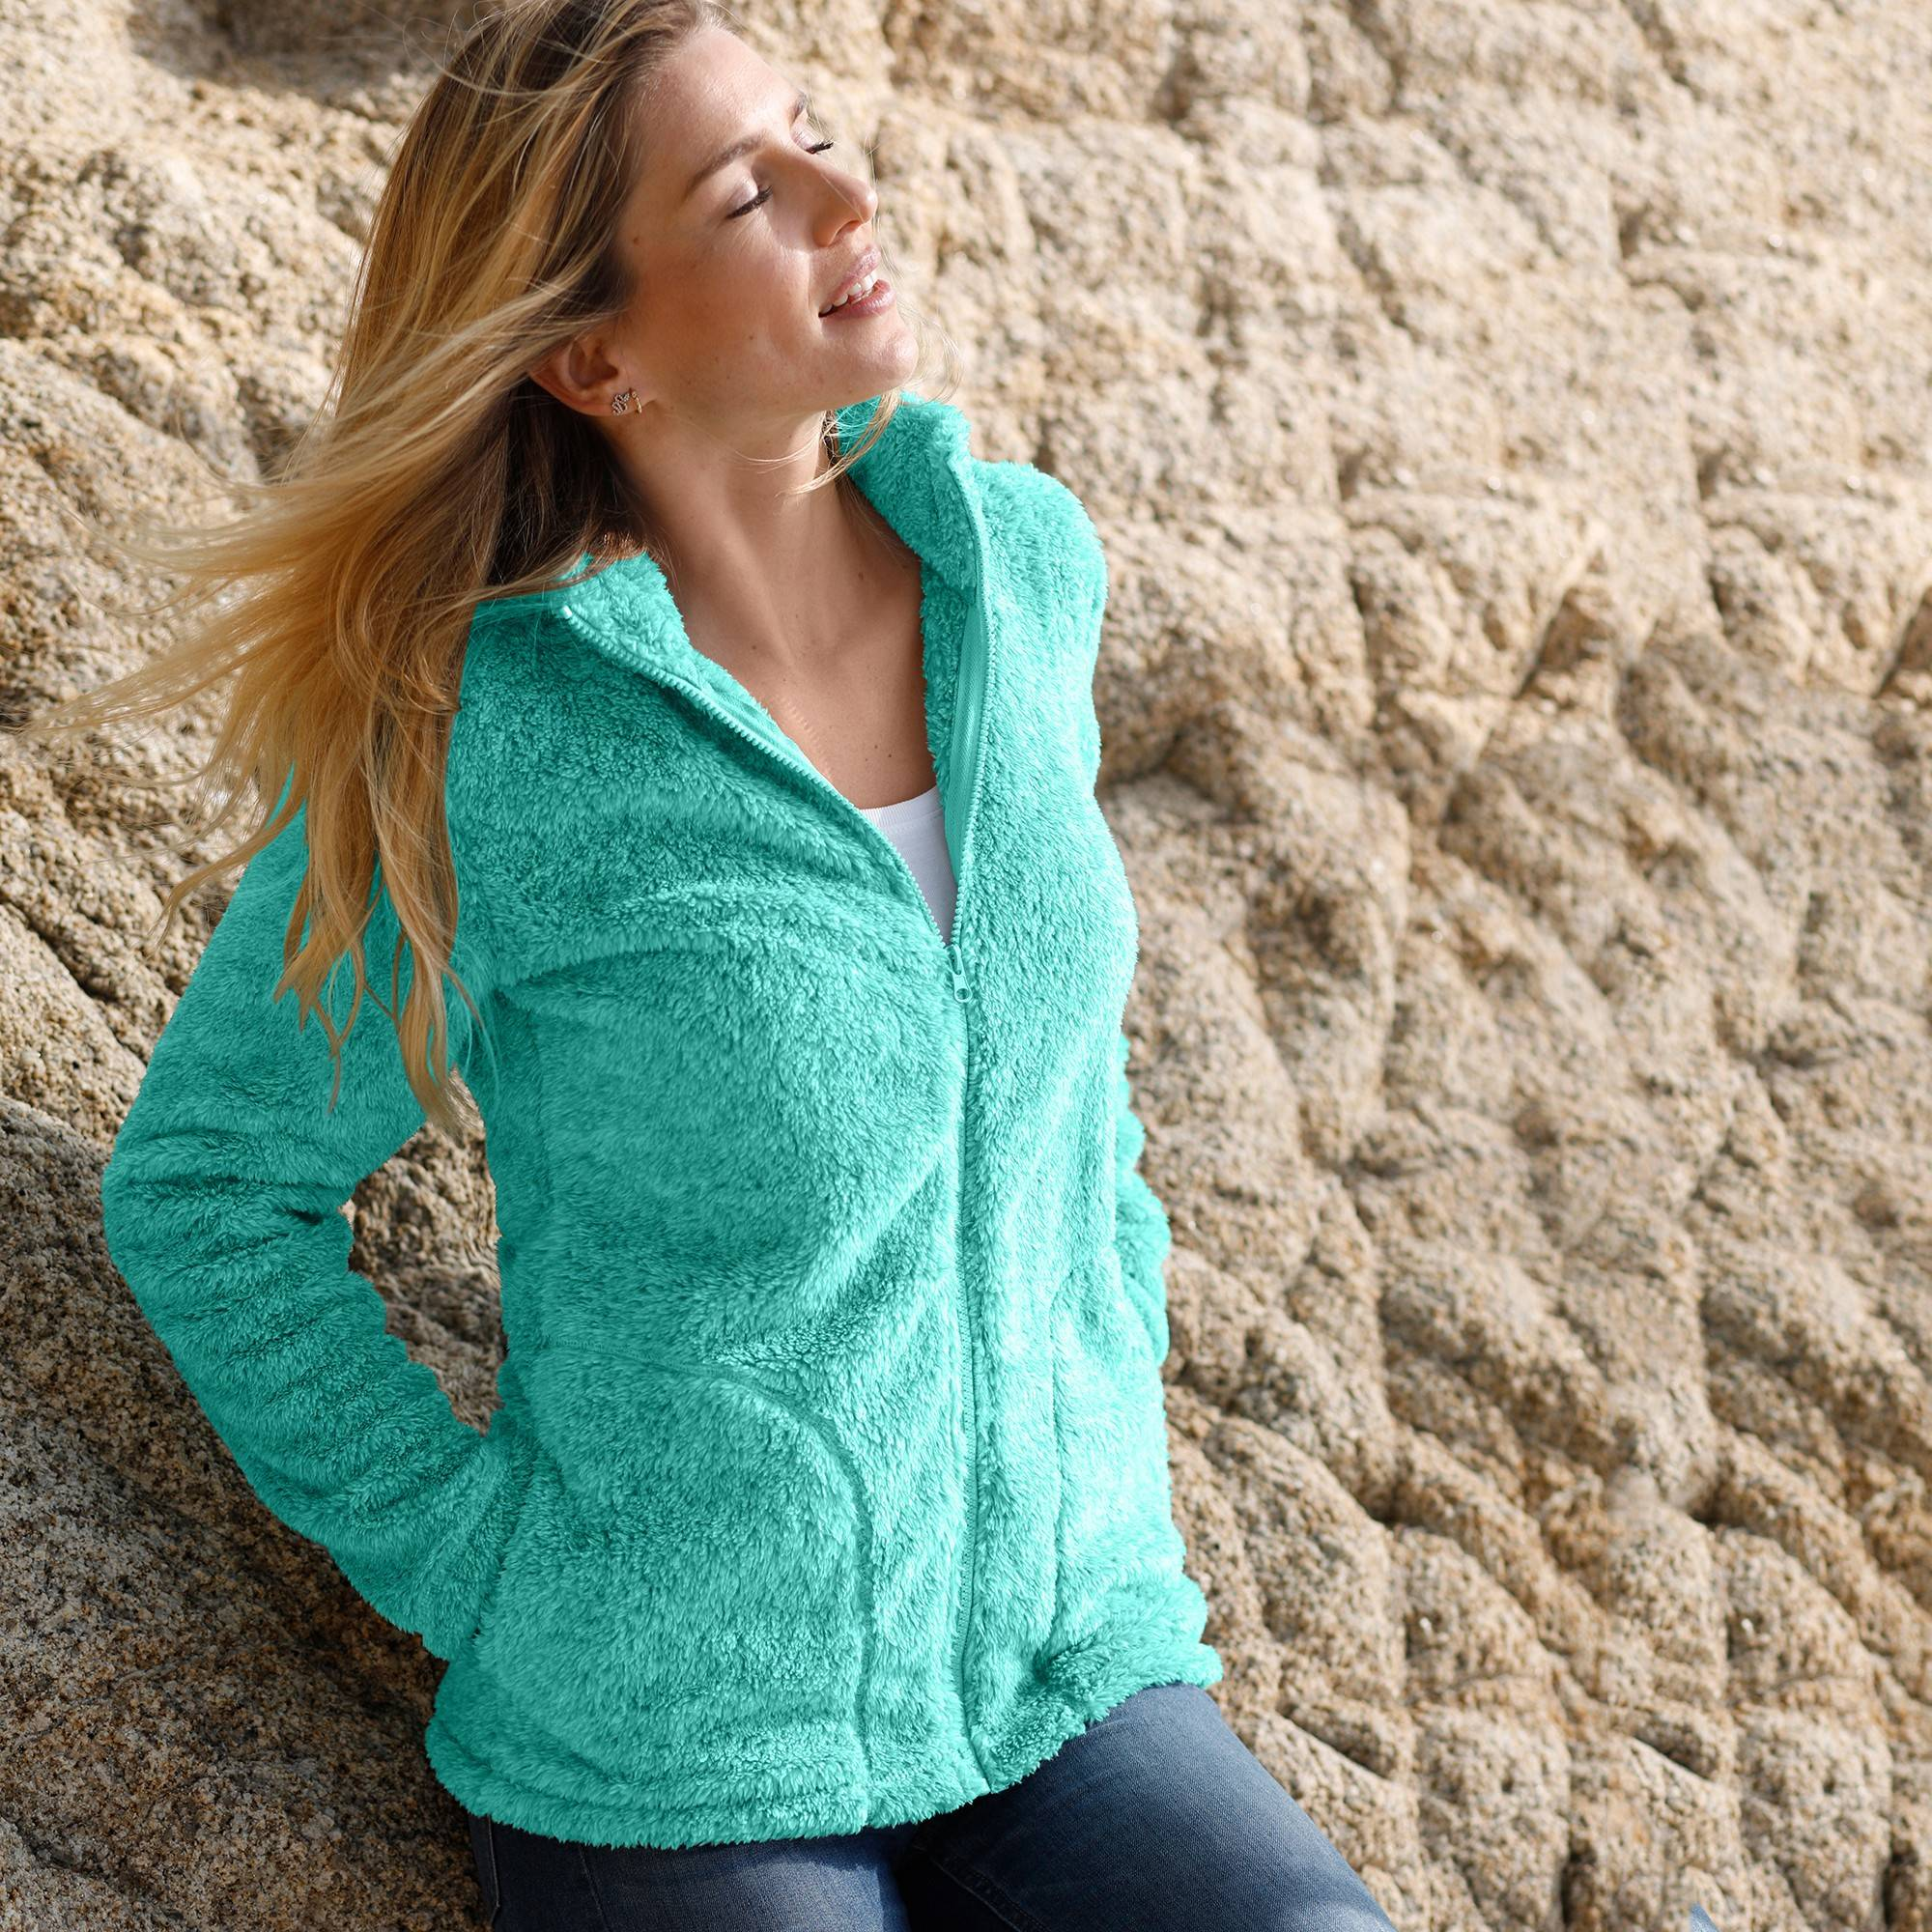 Casual Collection Veste maille peluche - Turquoise - Taille : 54 - Blancheporte